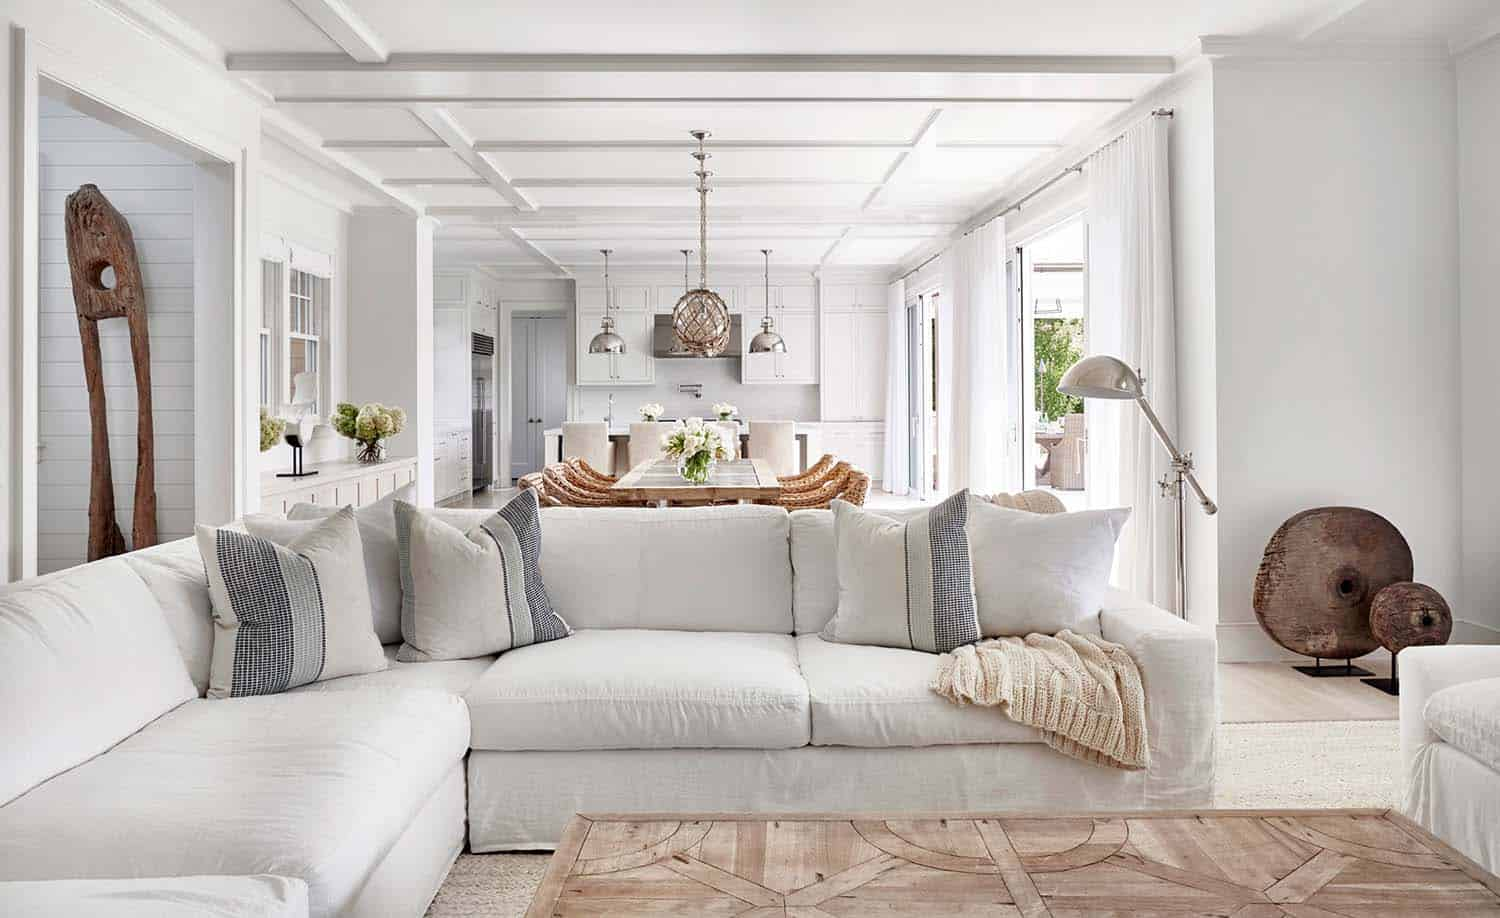 Amagansett Beach House-Chango-Co-07-1 Kindesign